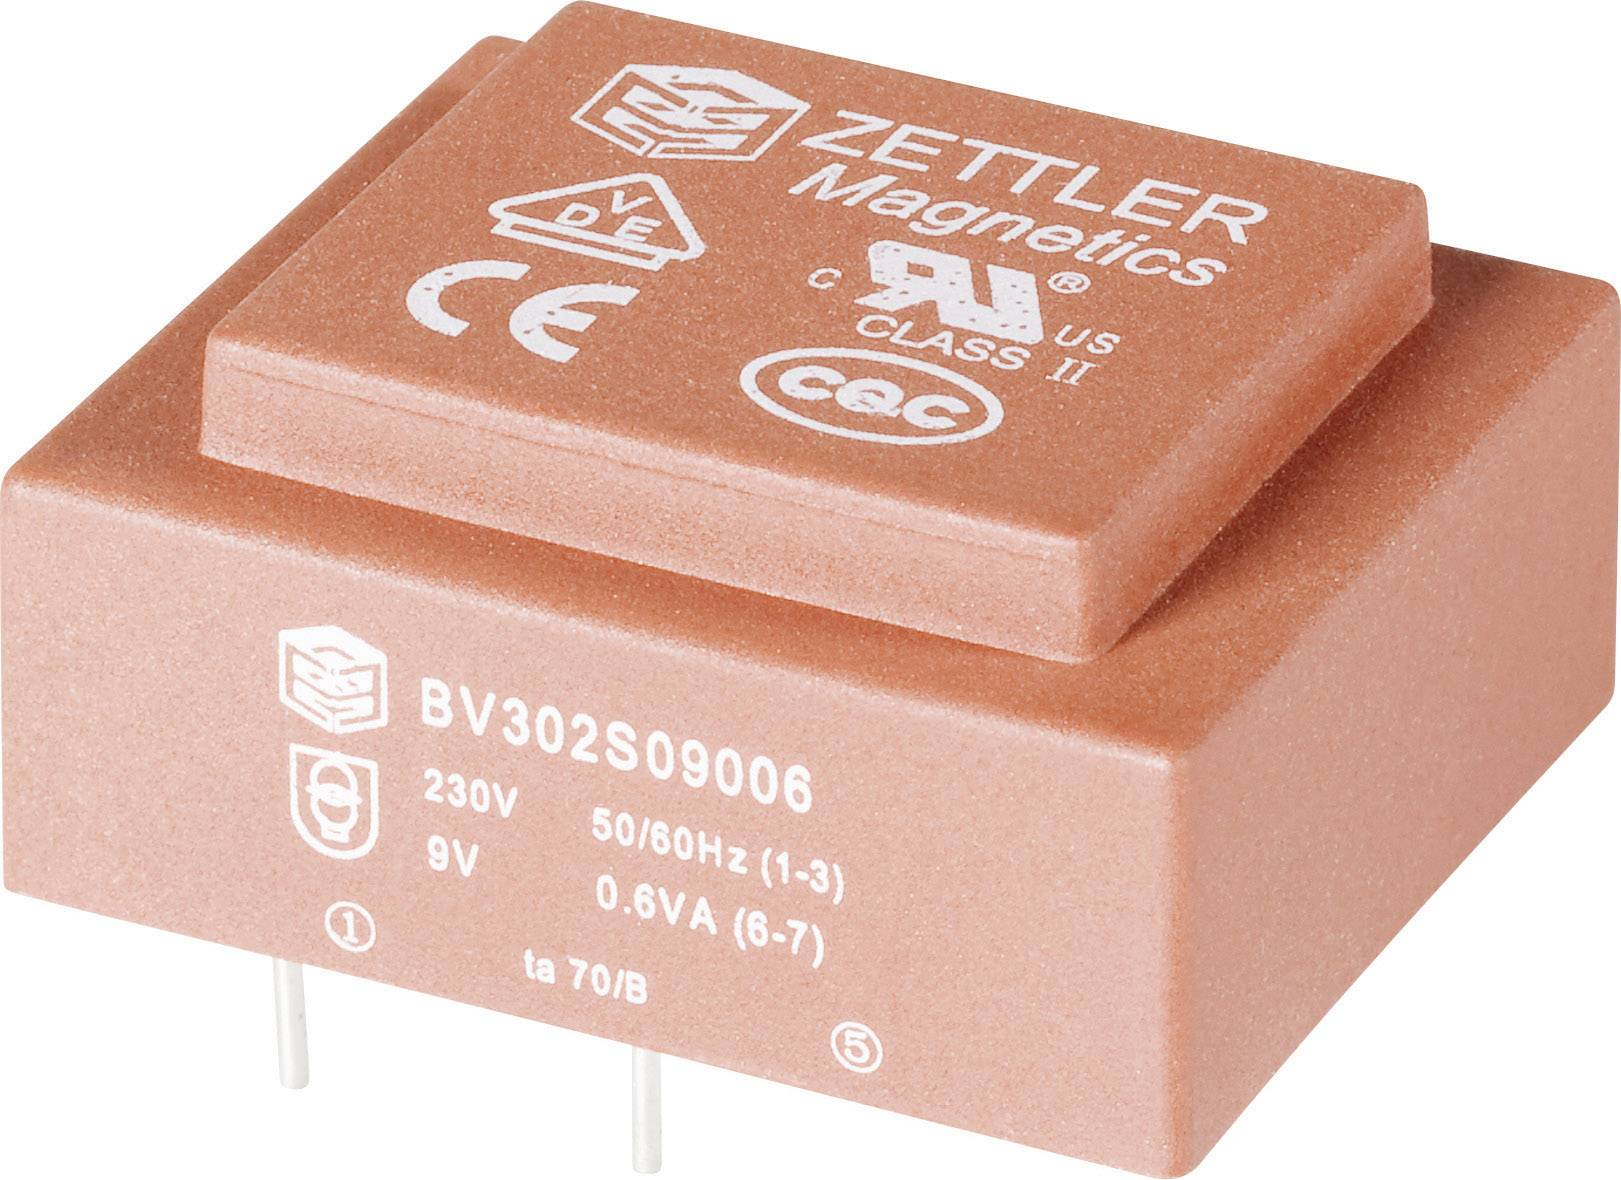 Transformátor do DPS Zettler Magnetics El30, 230 V/6 V, 100 mA, 1 VA